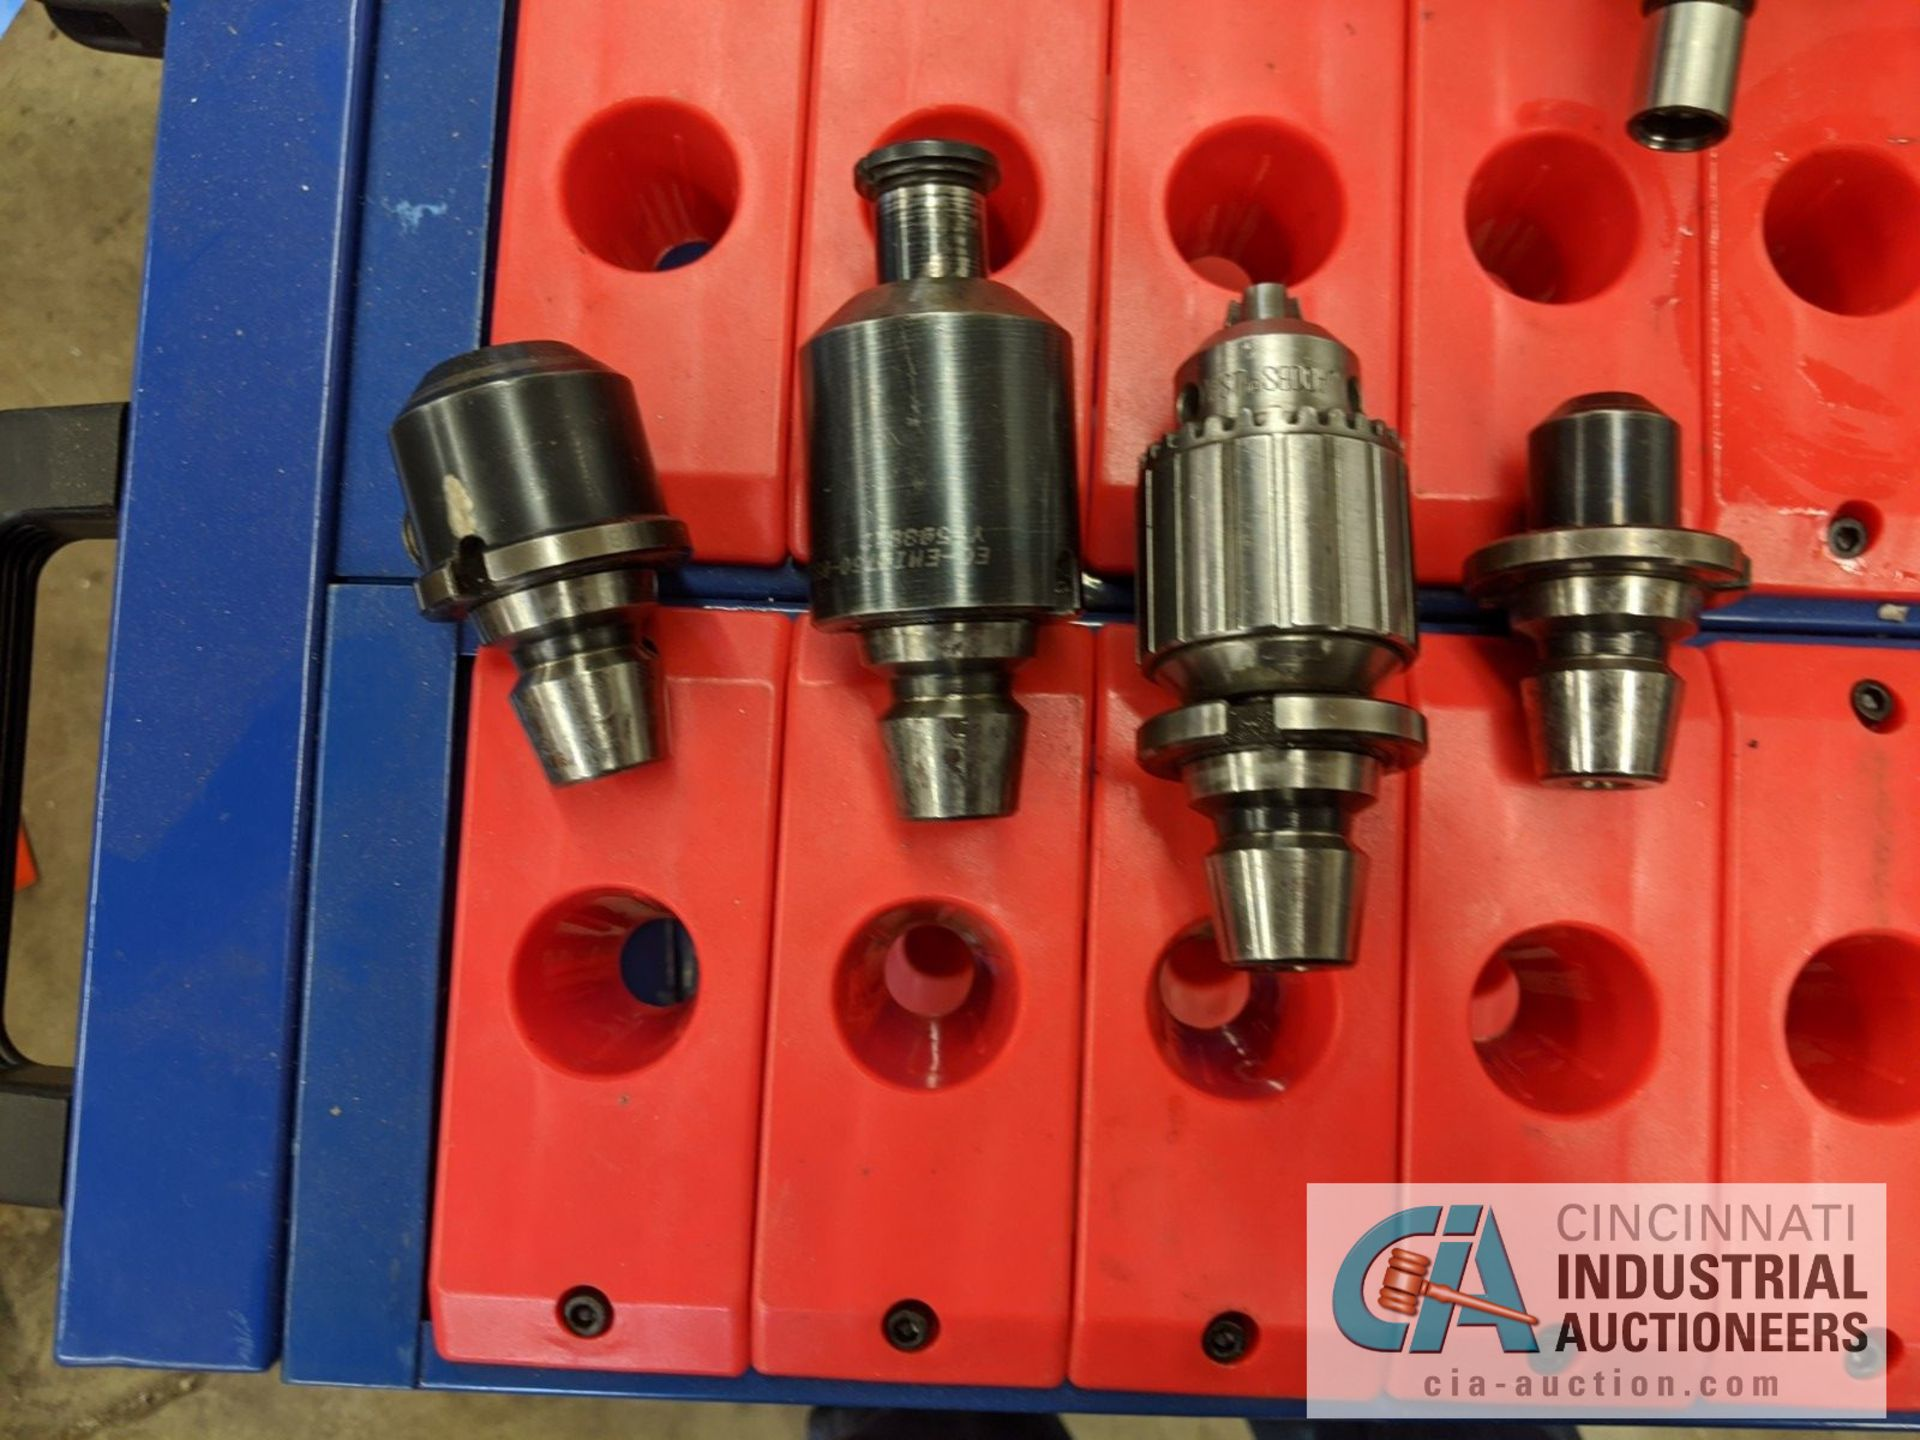 (LOT) 30 TAPER TOOLS - (9) PIECES, COLLETS AND CART - Image 3 of 5